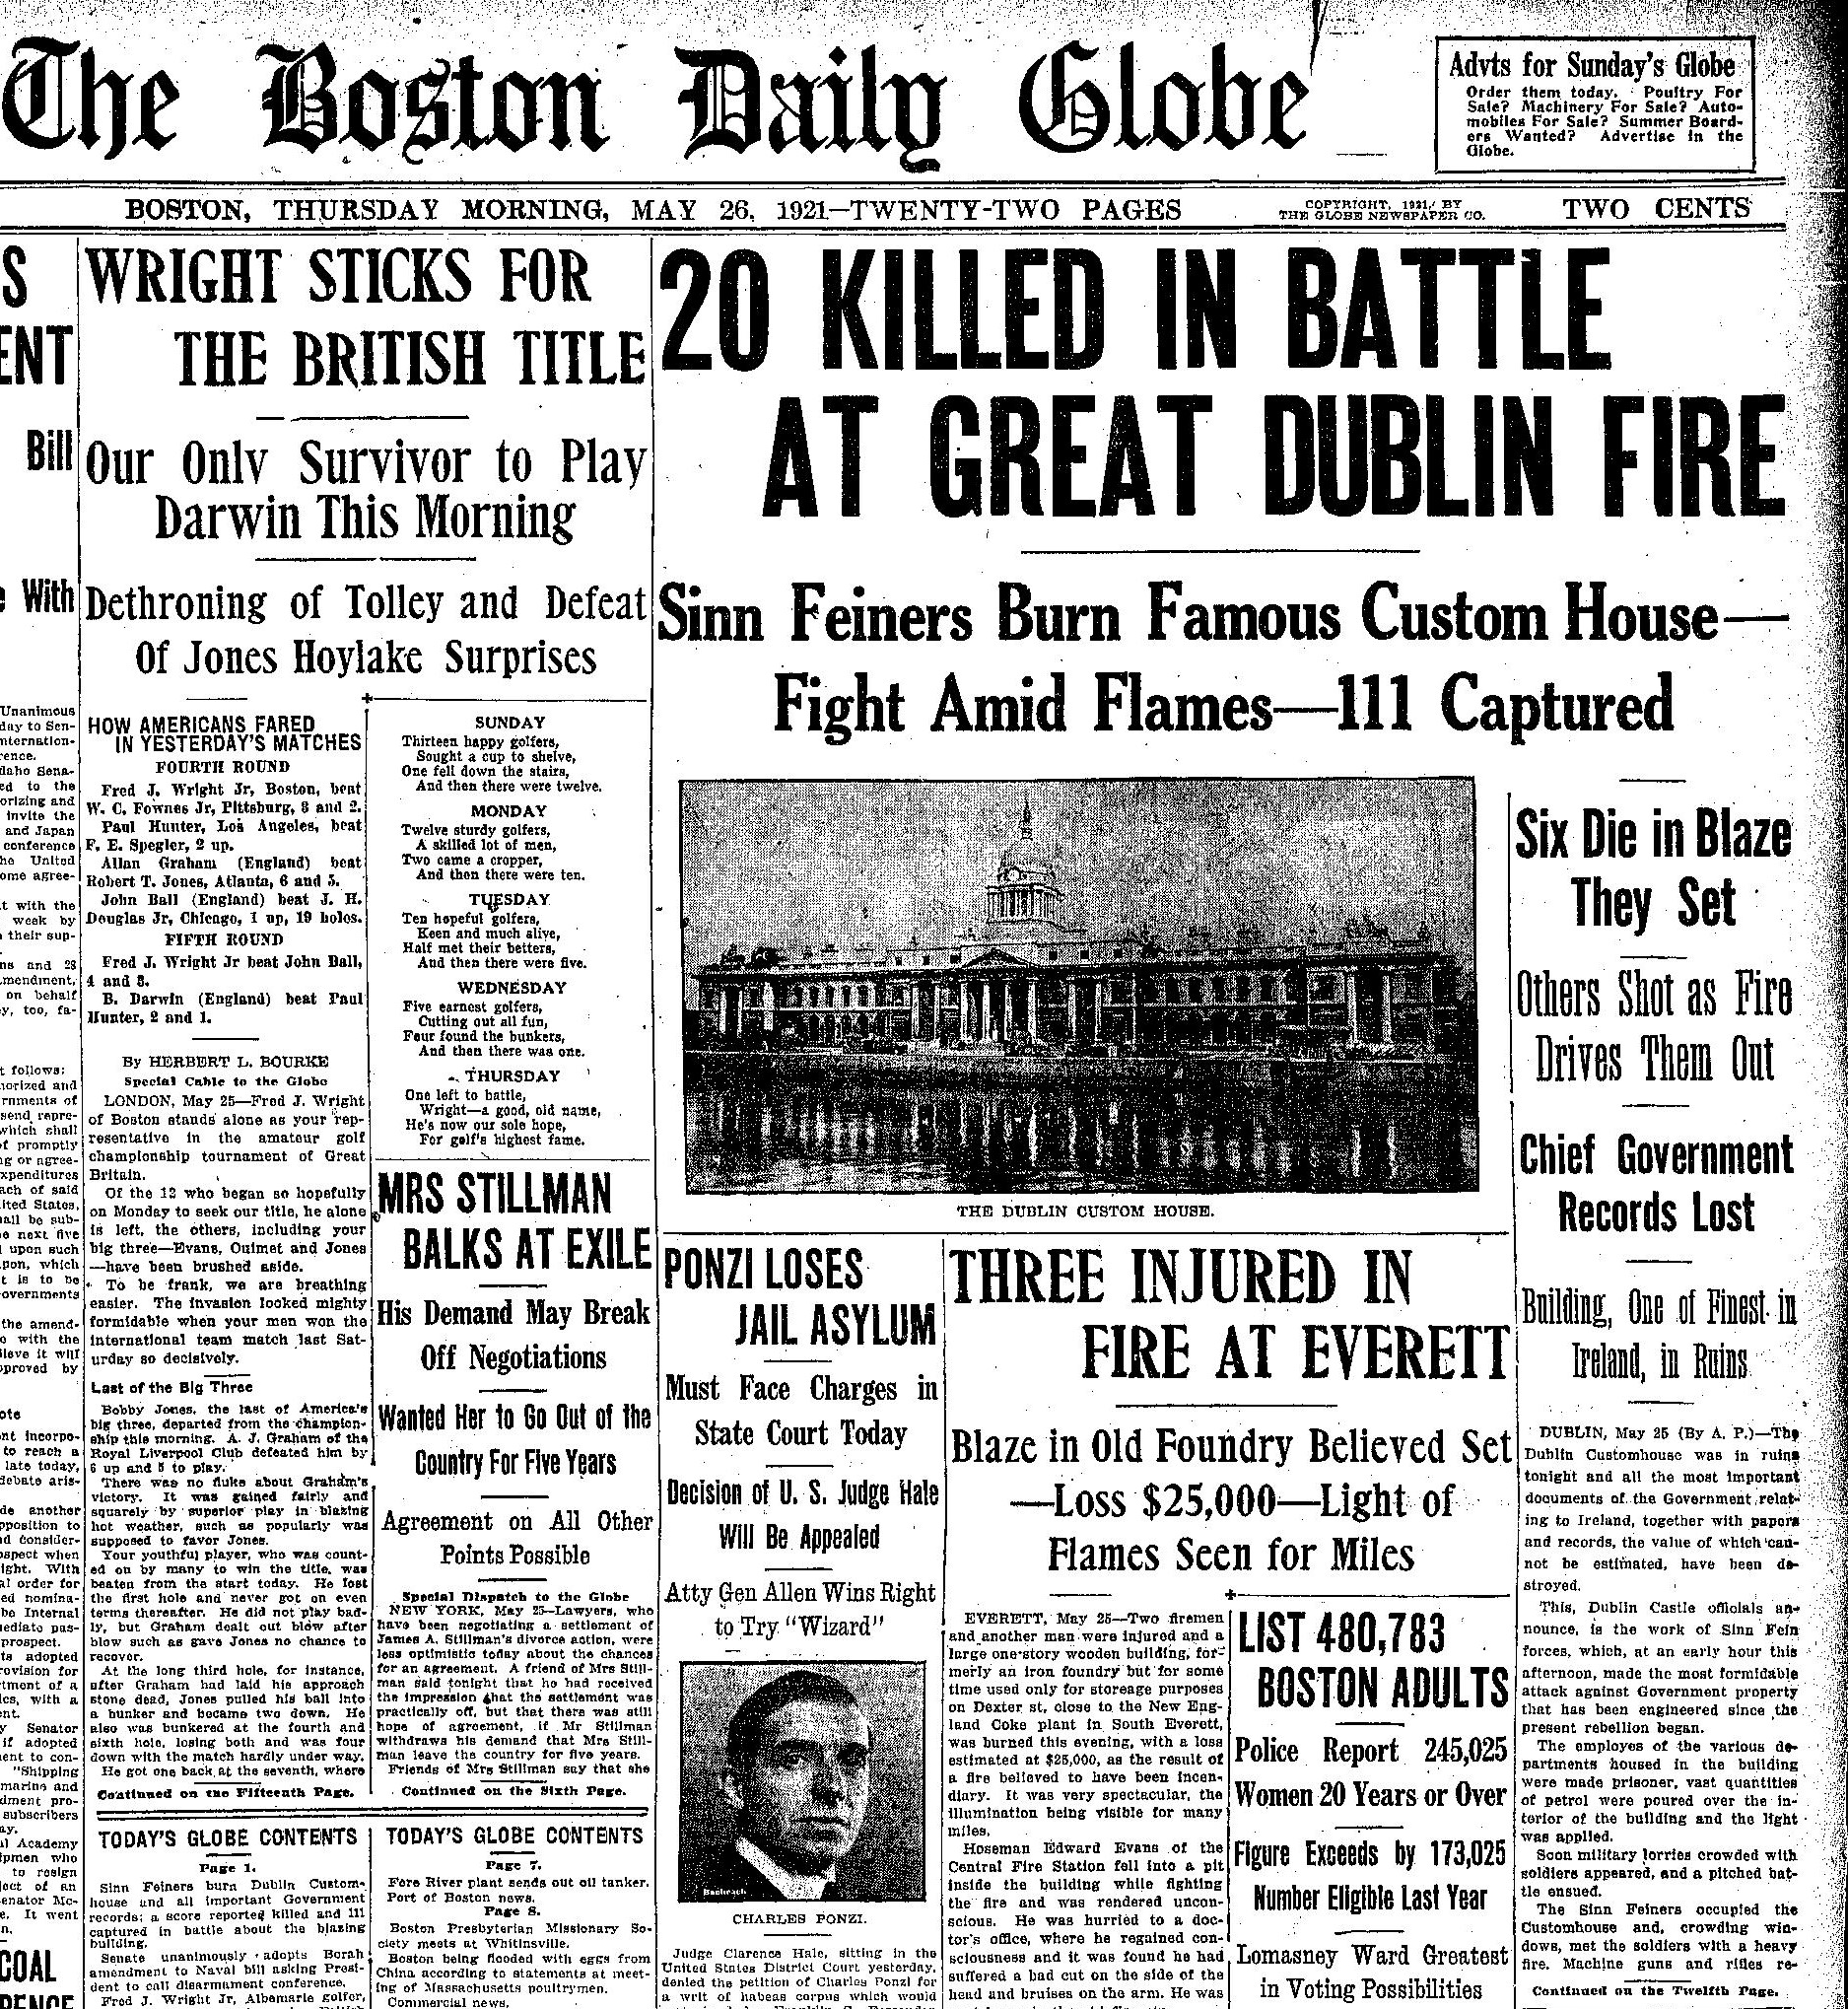 boston-daily-globe-26-20-killed-1921-page-001